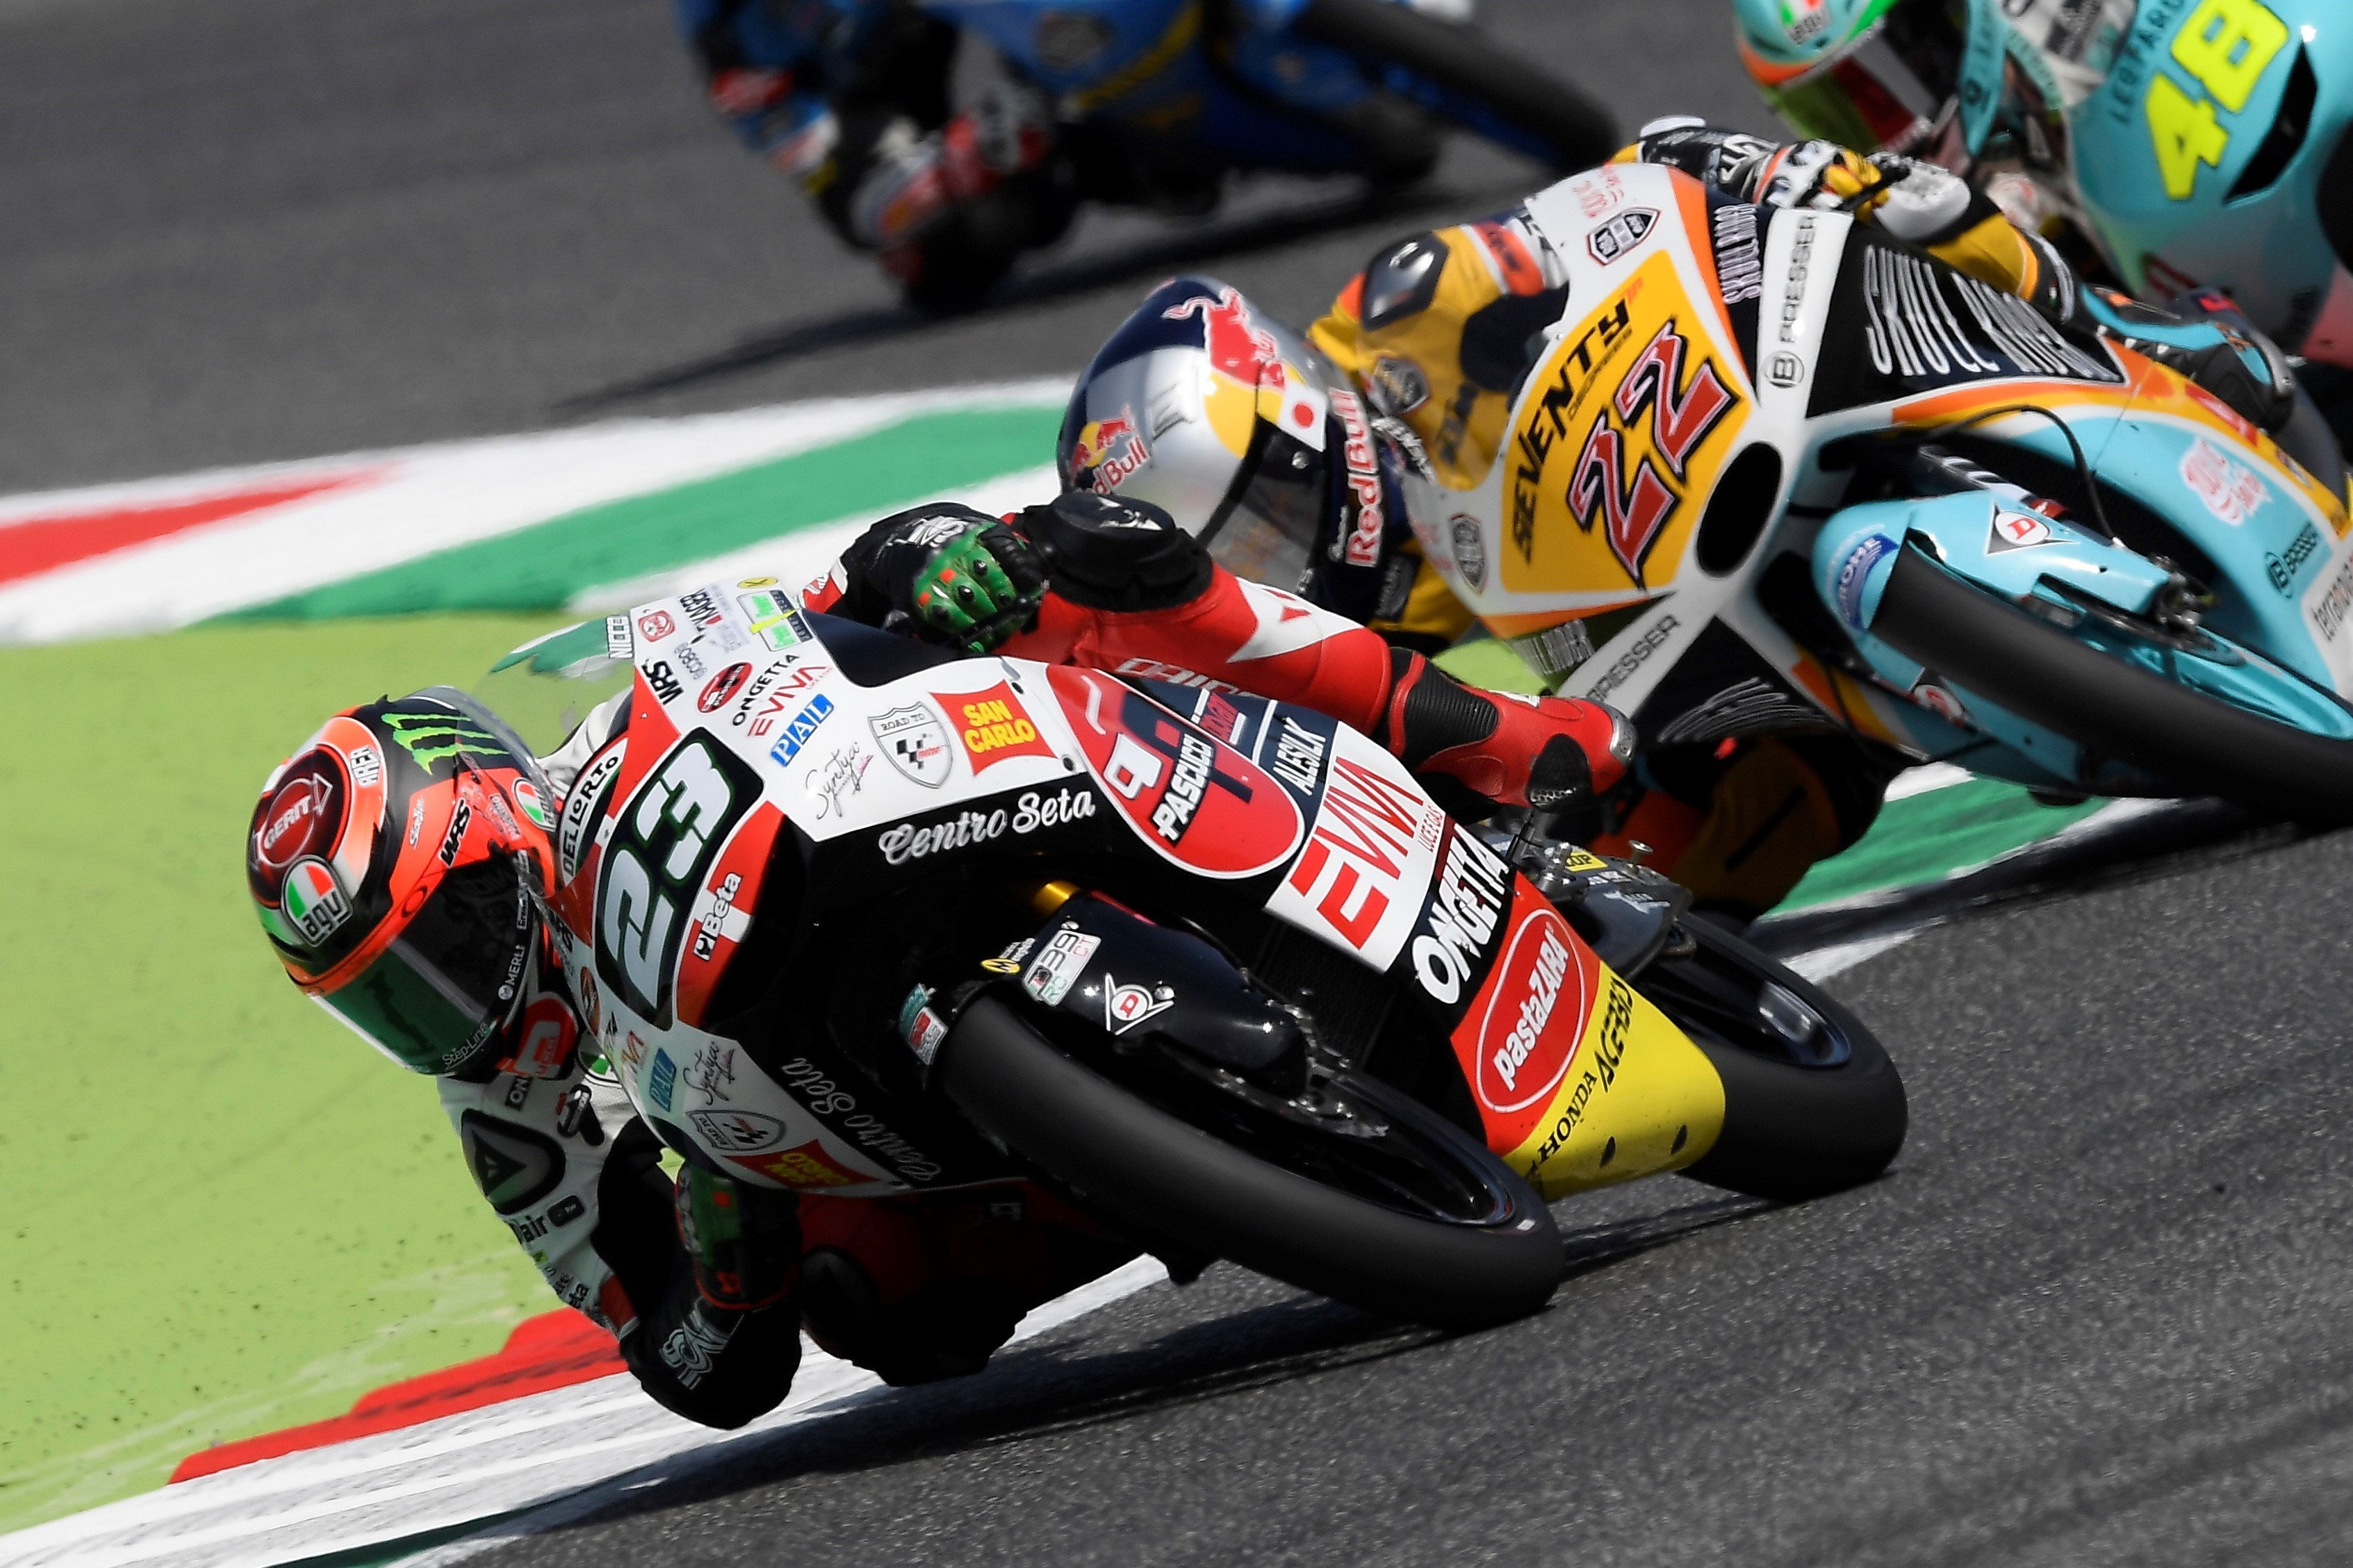 bagnaia still on top as moto2 heads to barcelona thepitcrewonline. Black Bedroom Furniture Sets. Home Design Ideas